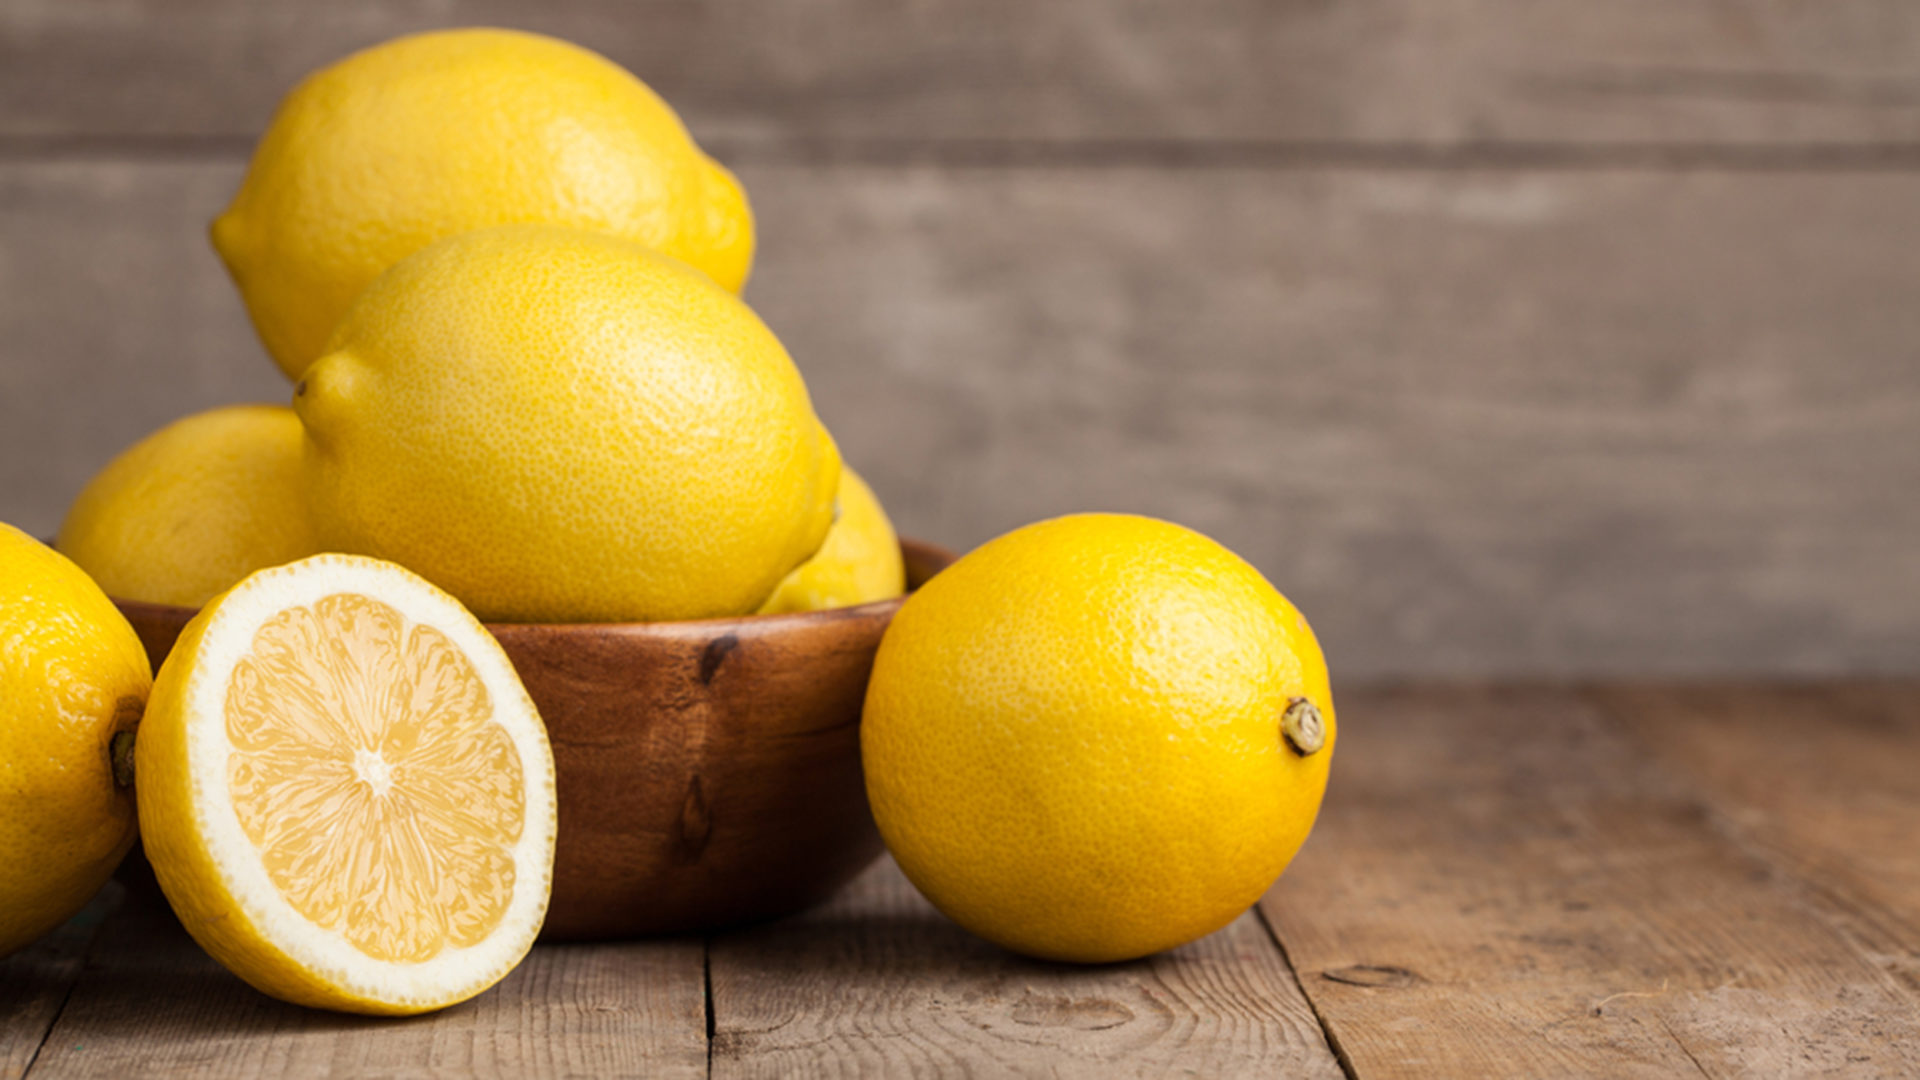 Compounds in lemon found to effectively fight cancer without